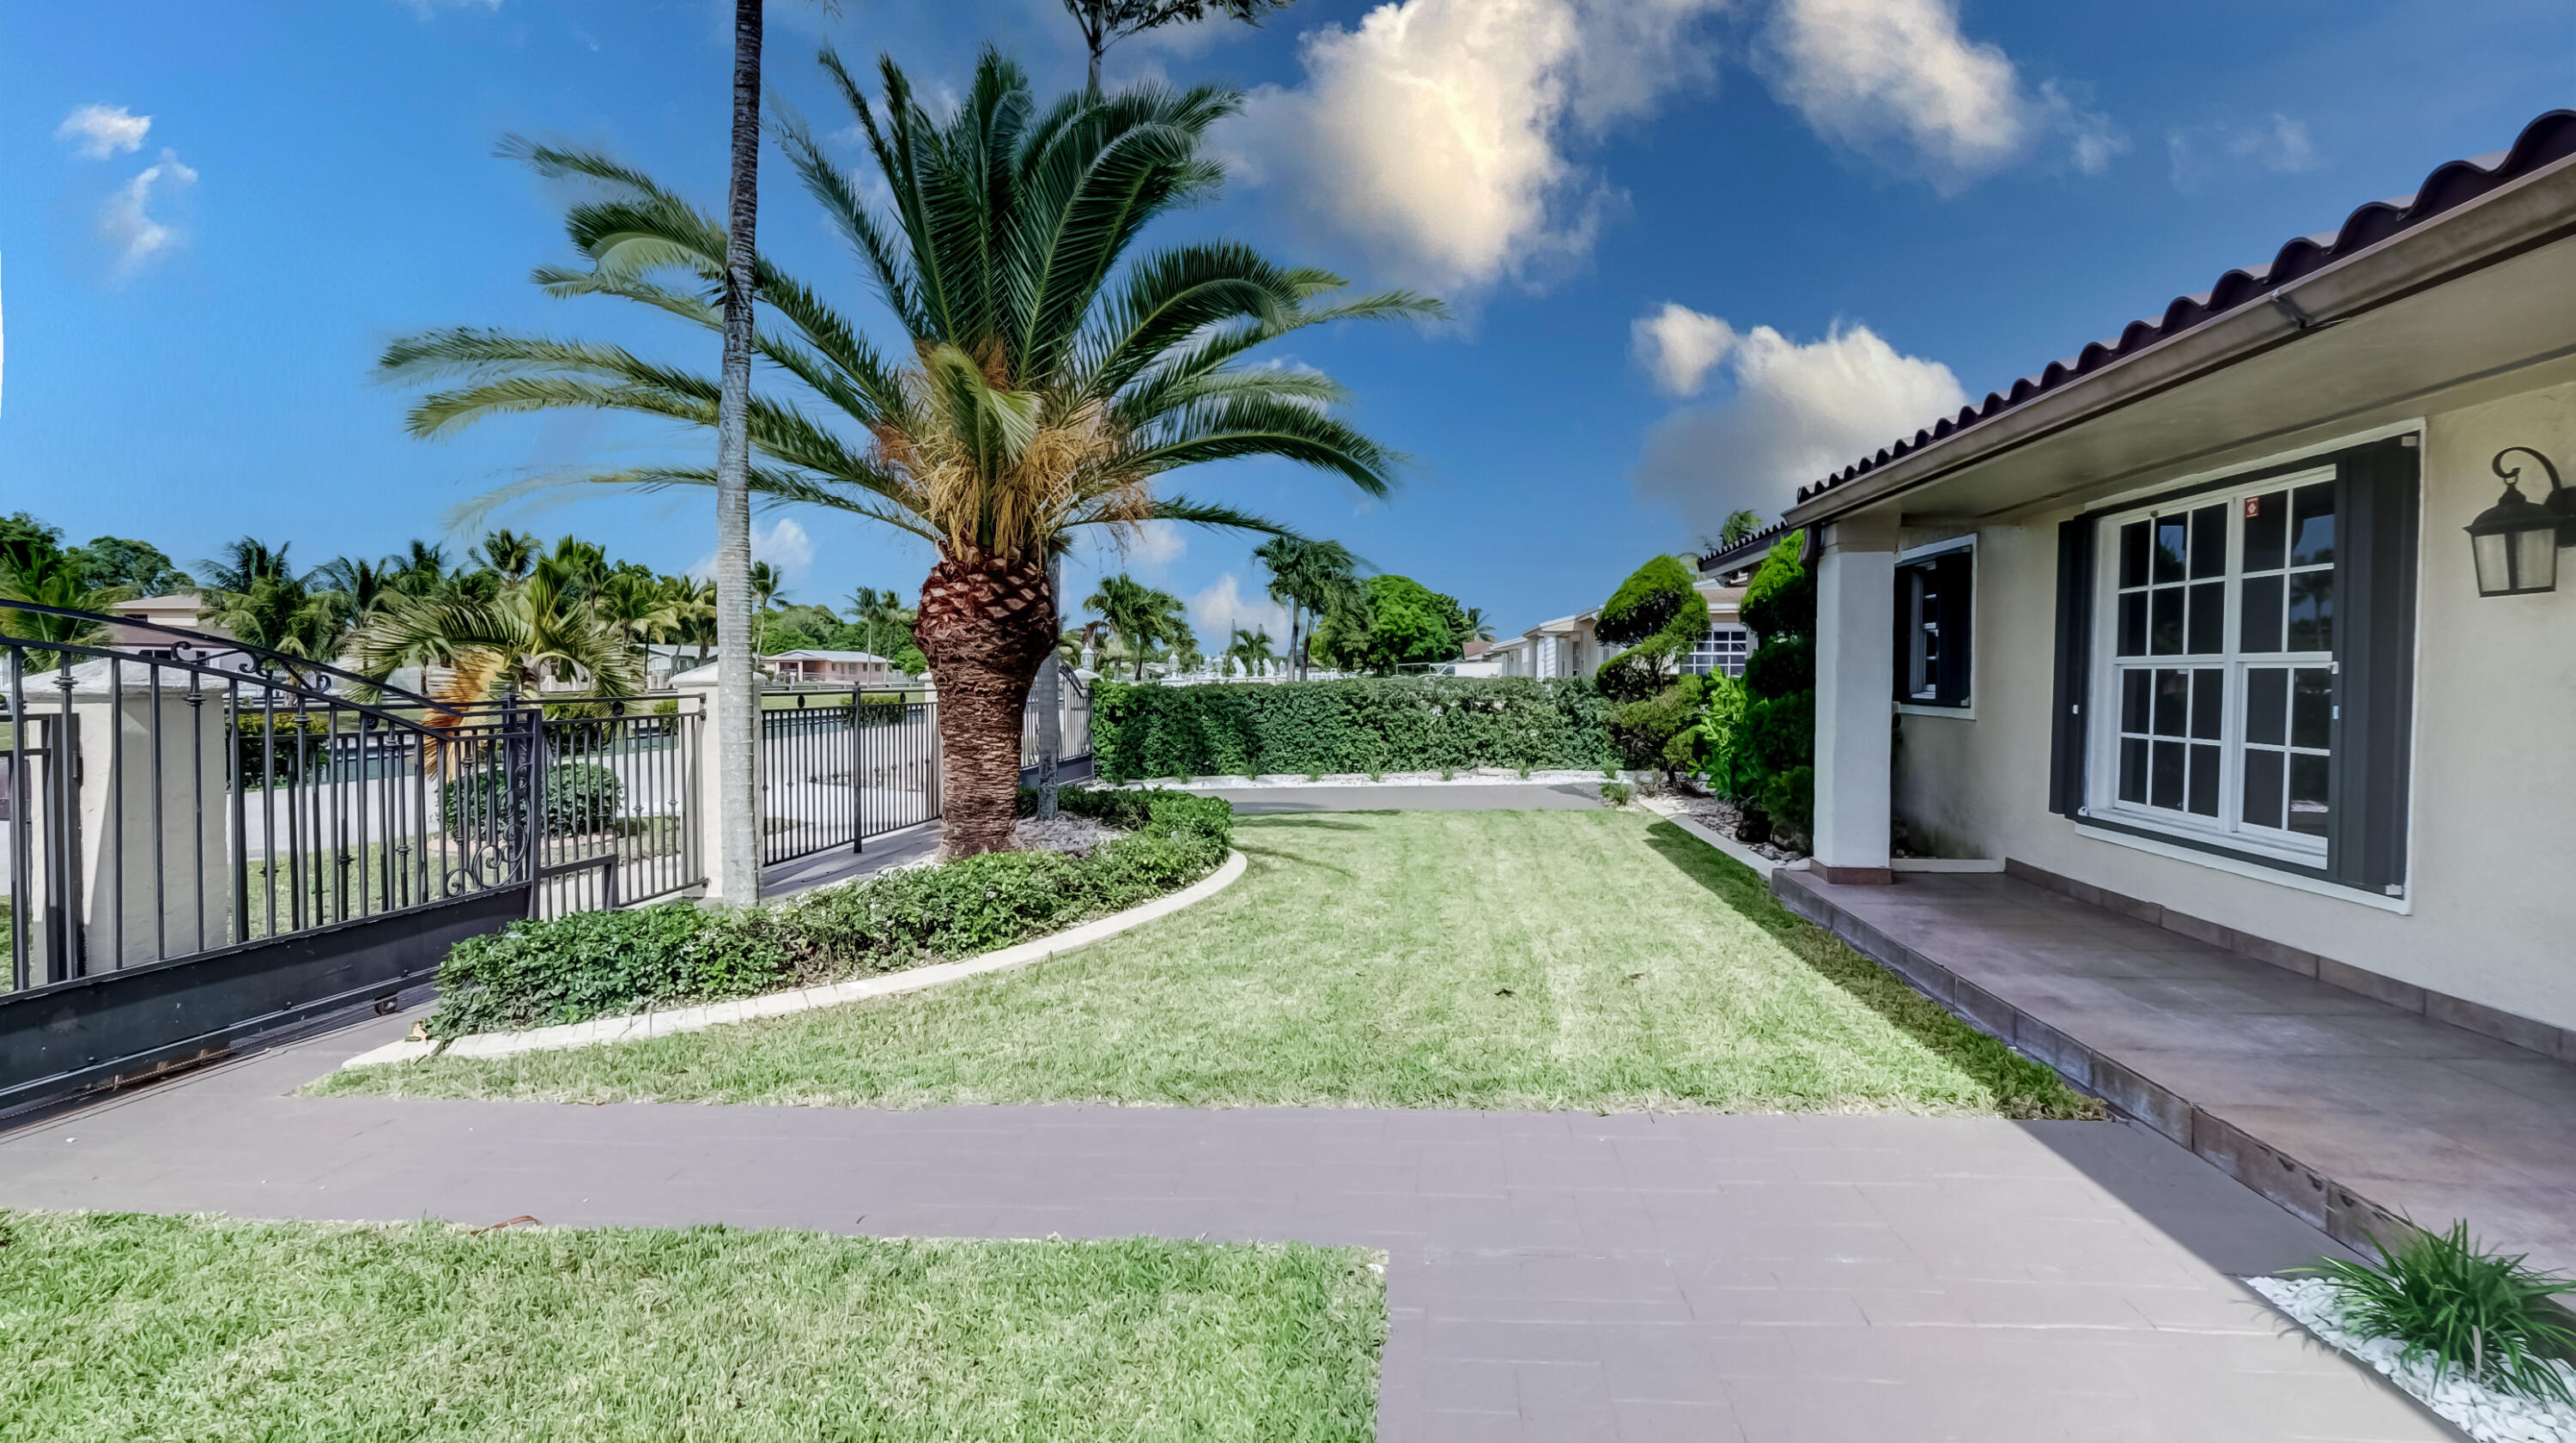 Home for sale in Bankers Sub No 1 Miami Gardens Florida